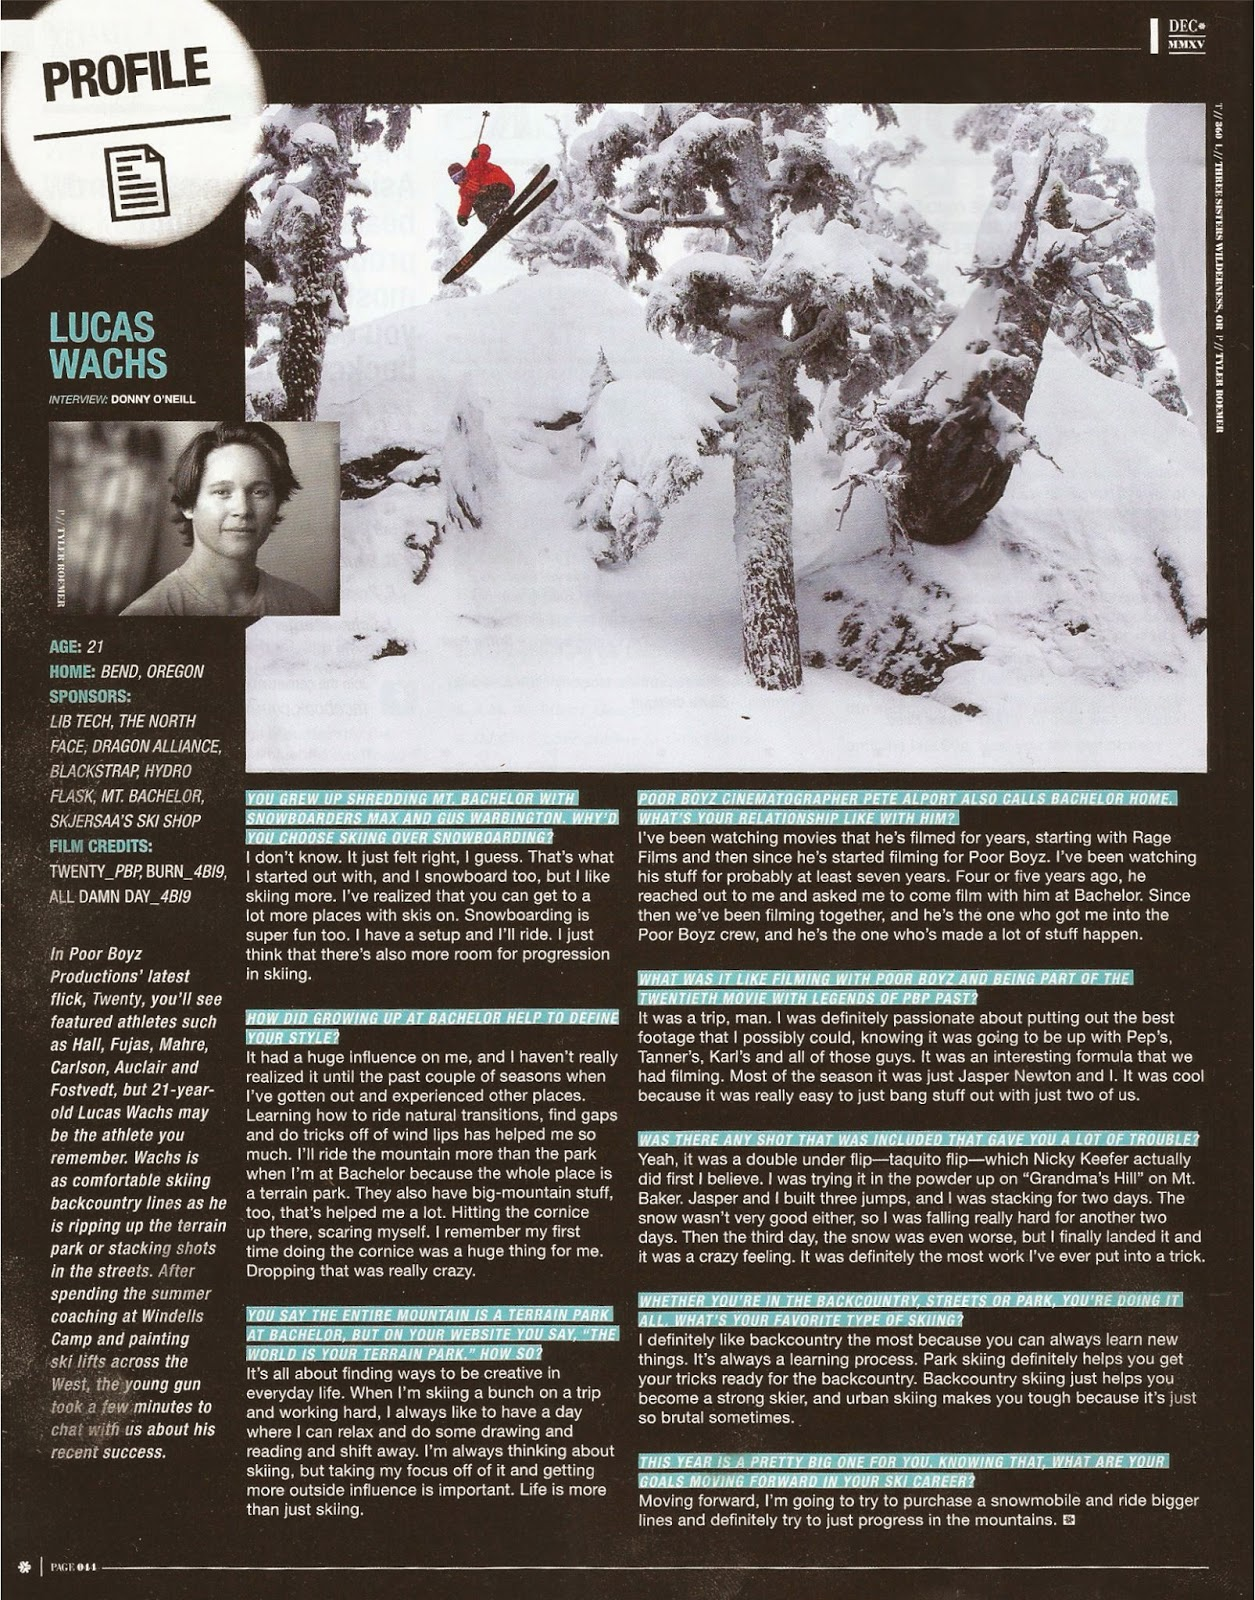 Pro skier Lucas Wachs interviews with Freeksier Magazine for their December Issue.